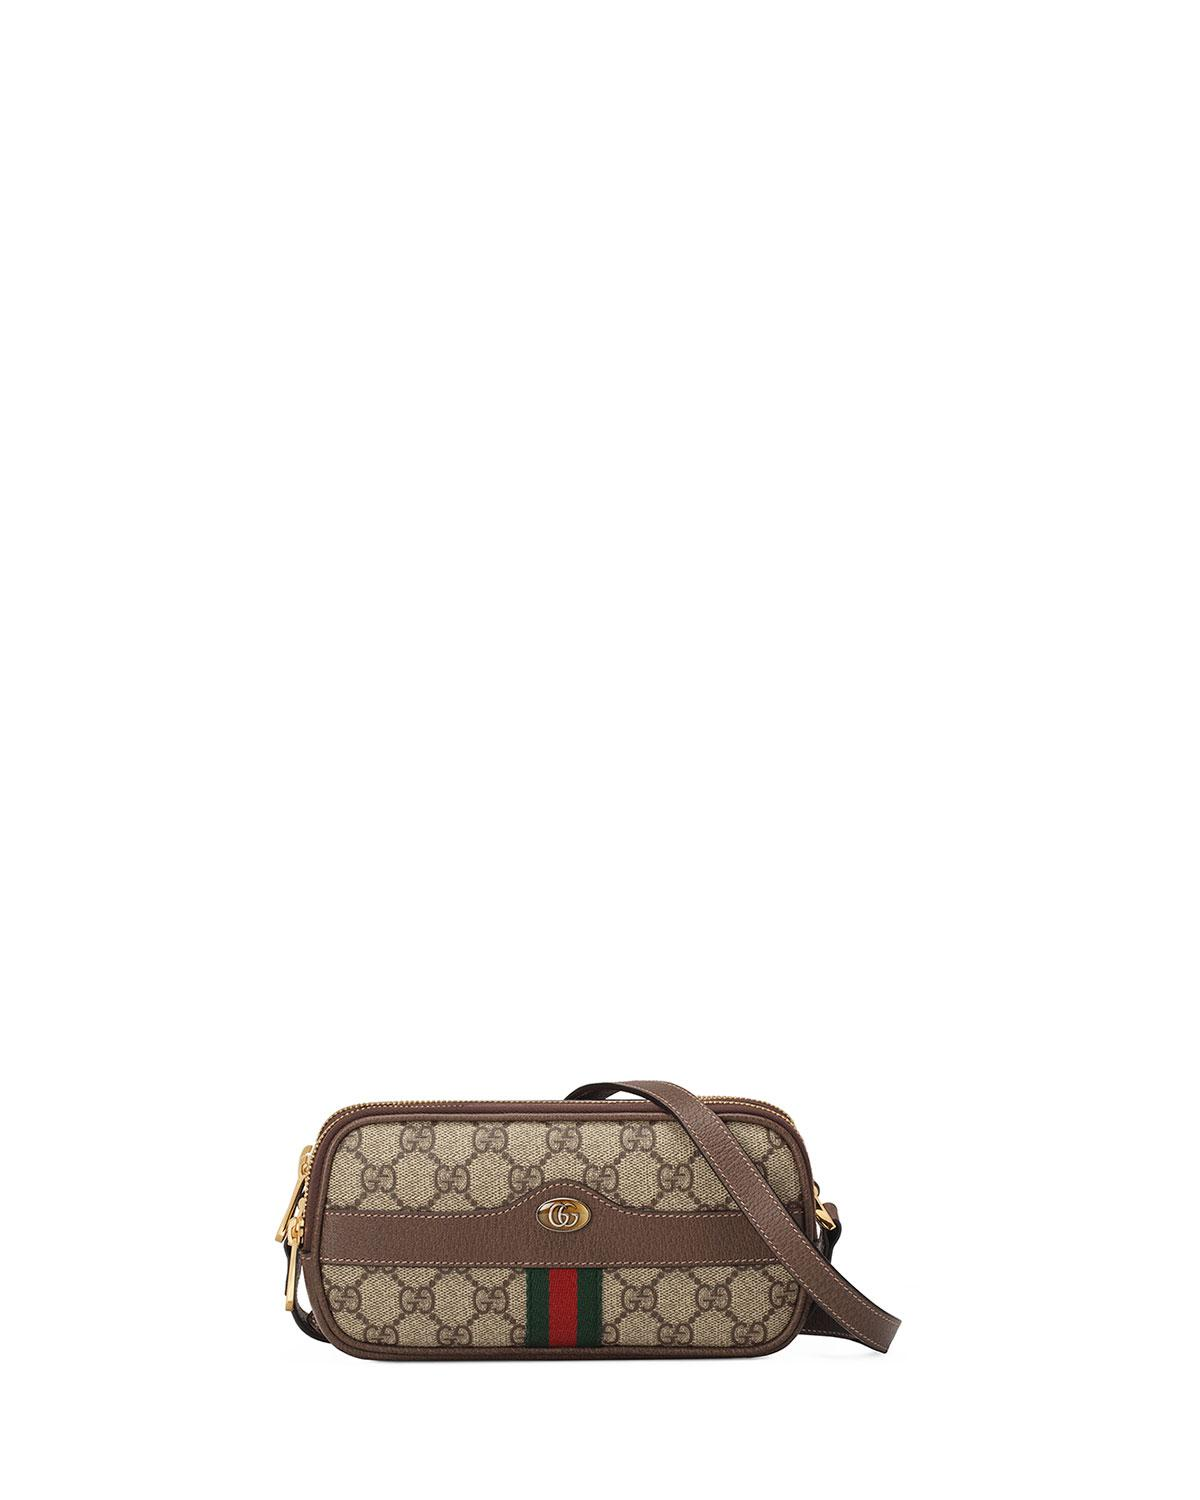 5af7c1b40a9e9b Gucci Mini Ophidia Gg Supreme Canvas Crossbody Bag in Natural - Lyst